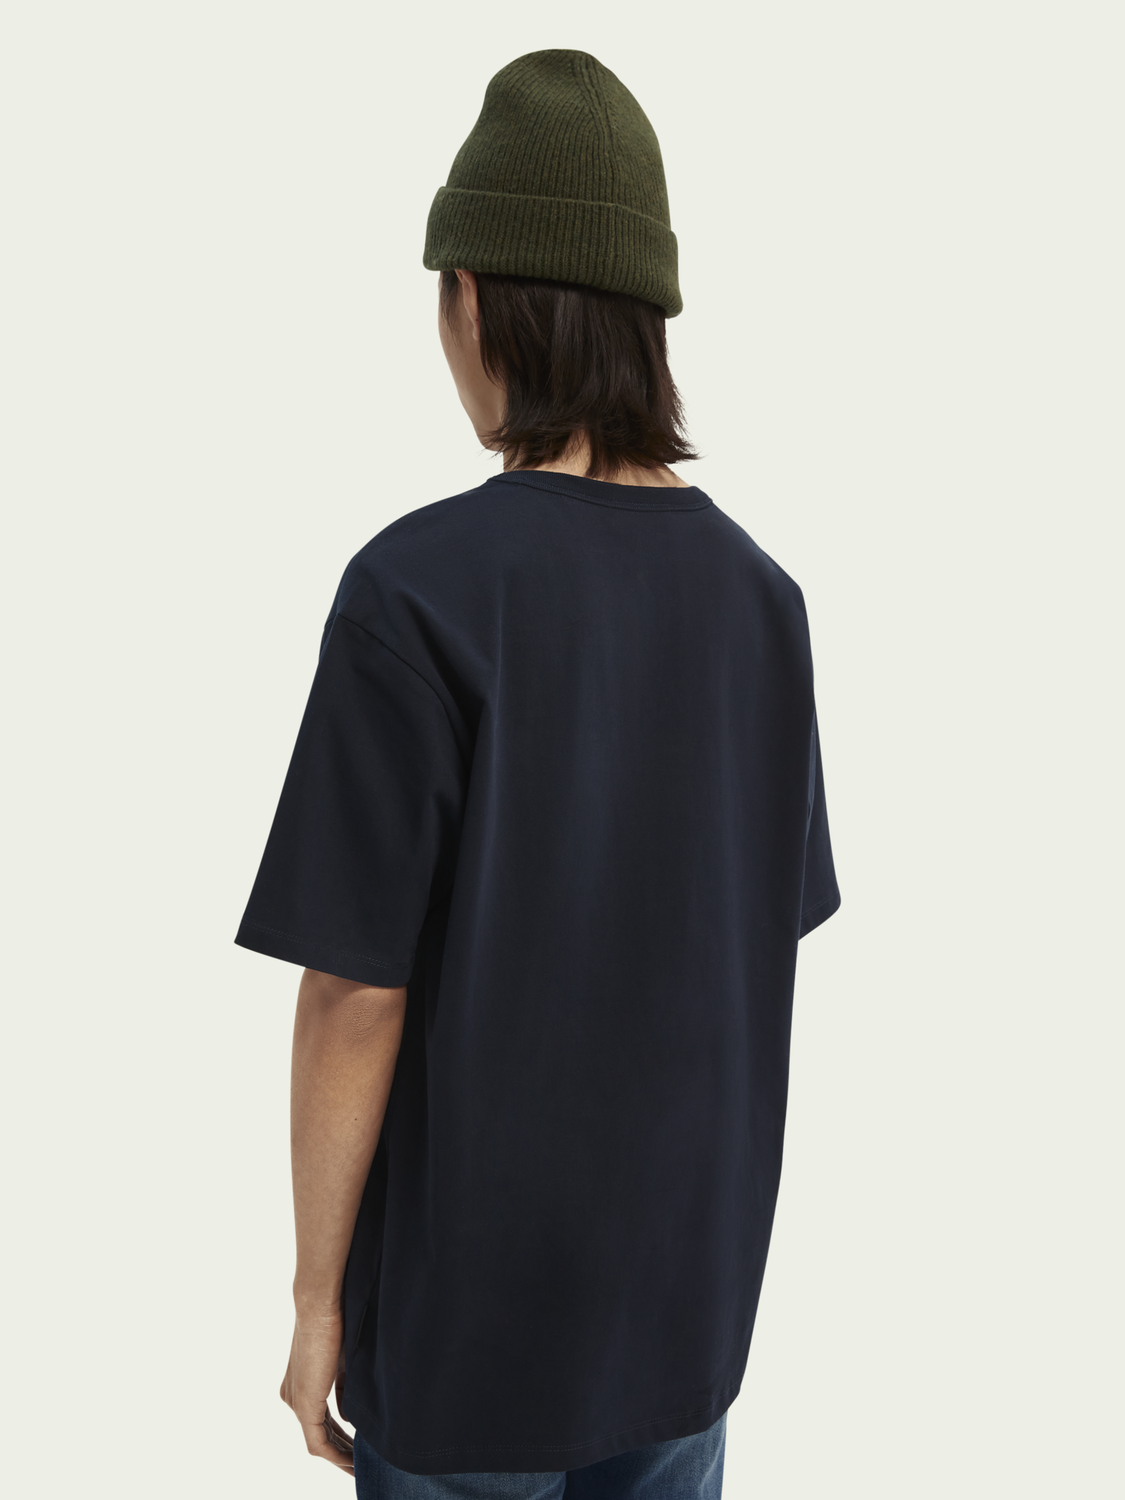 Uomo T-shirt relaxed fit con grafica